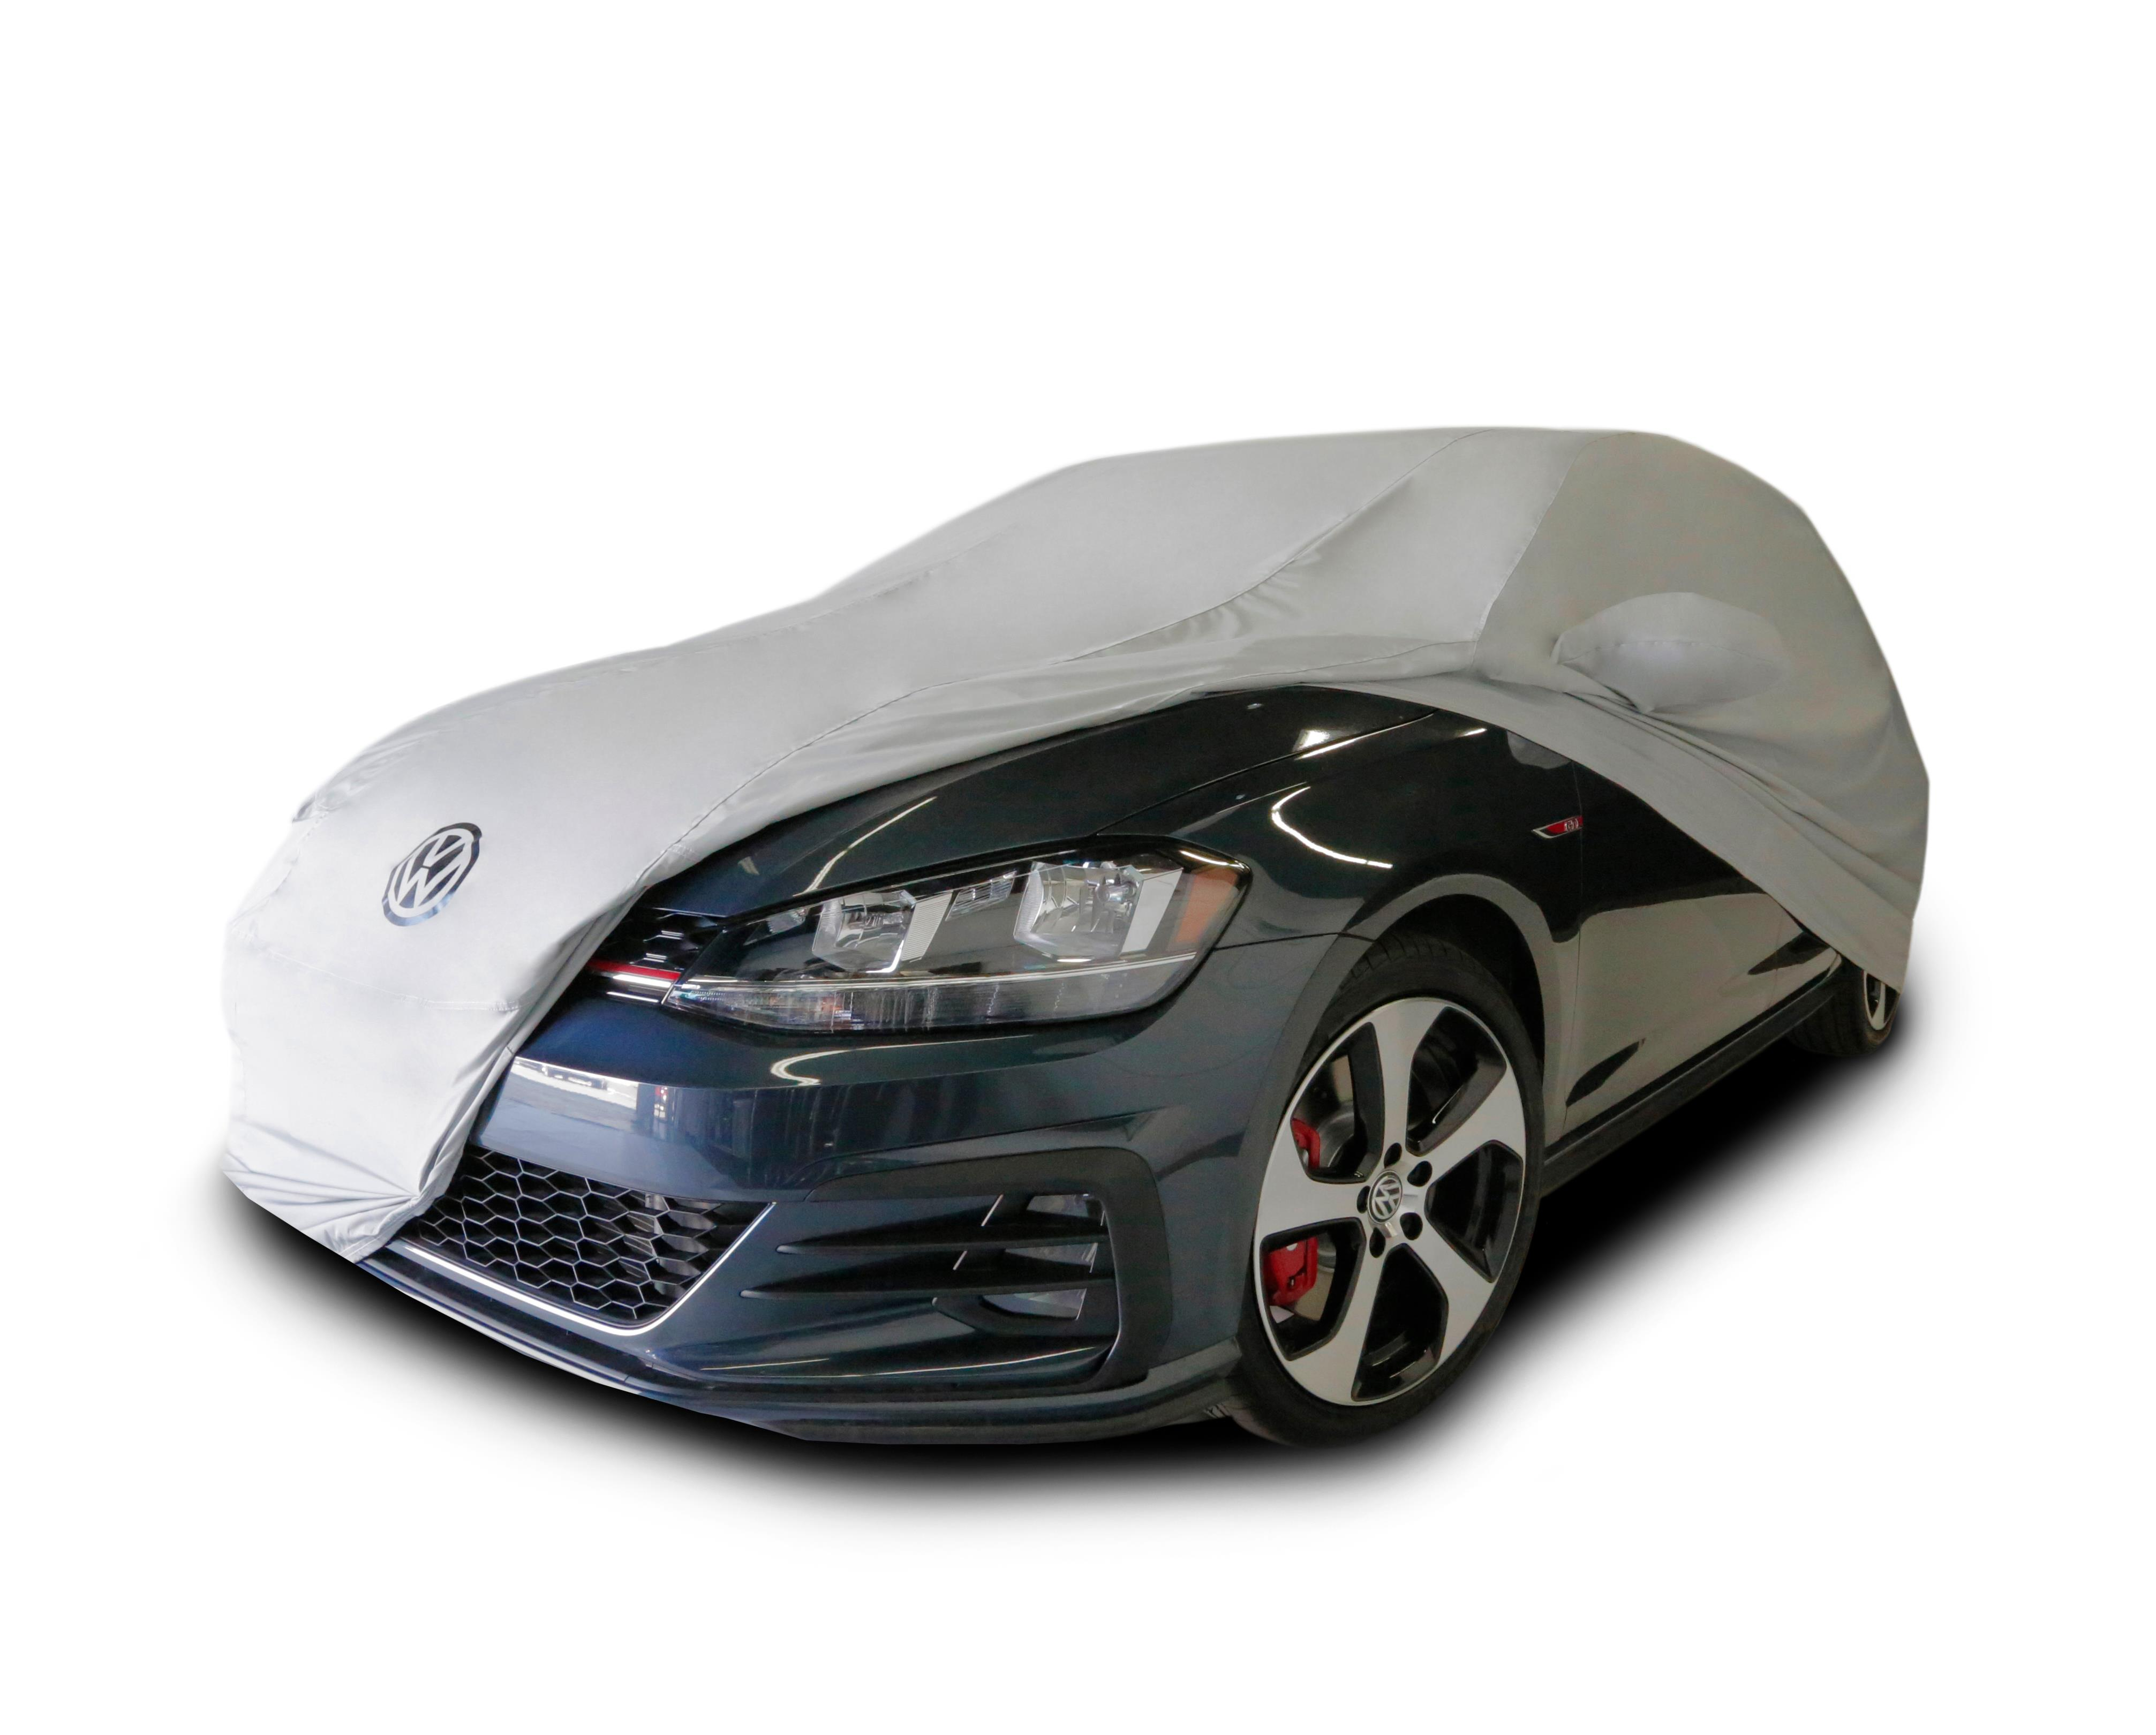 2018 Volkswagen Gti Car Cover Stormproof With Rear Roof